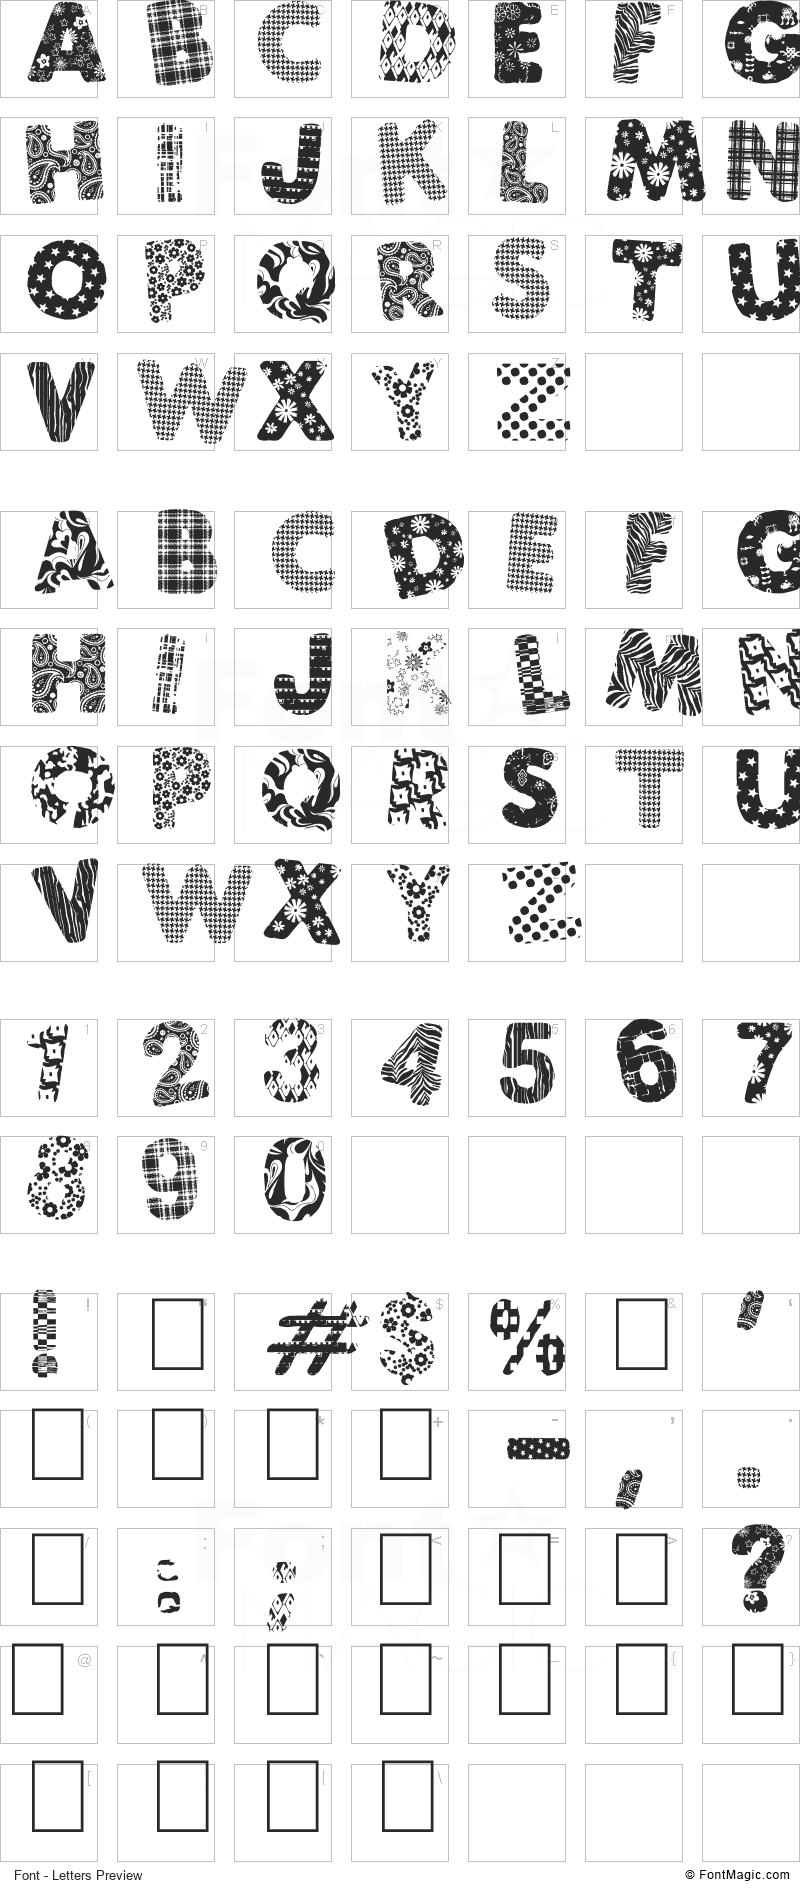 PatchFun Font - All Latters Preview Chart